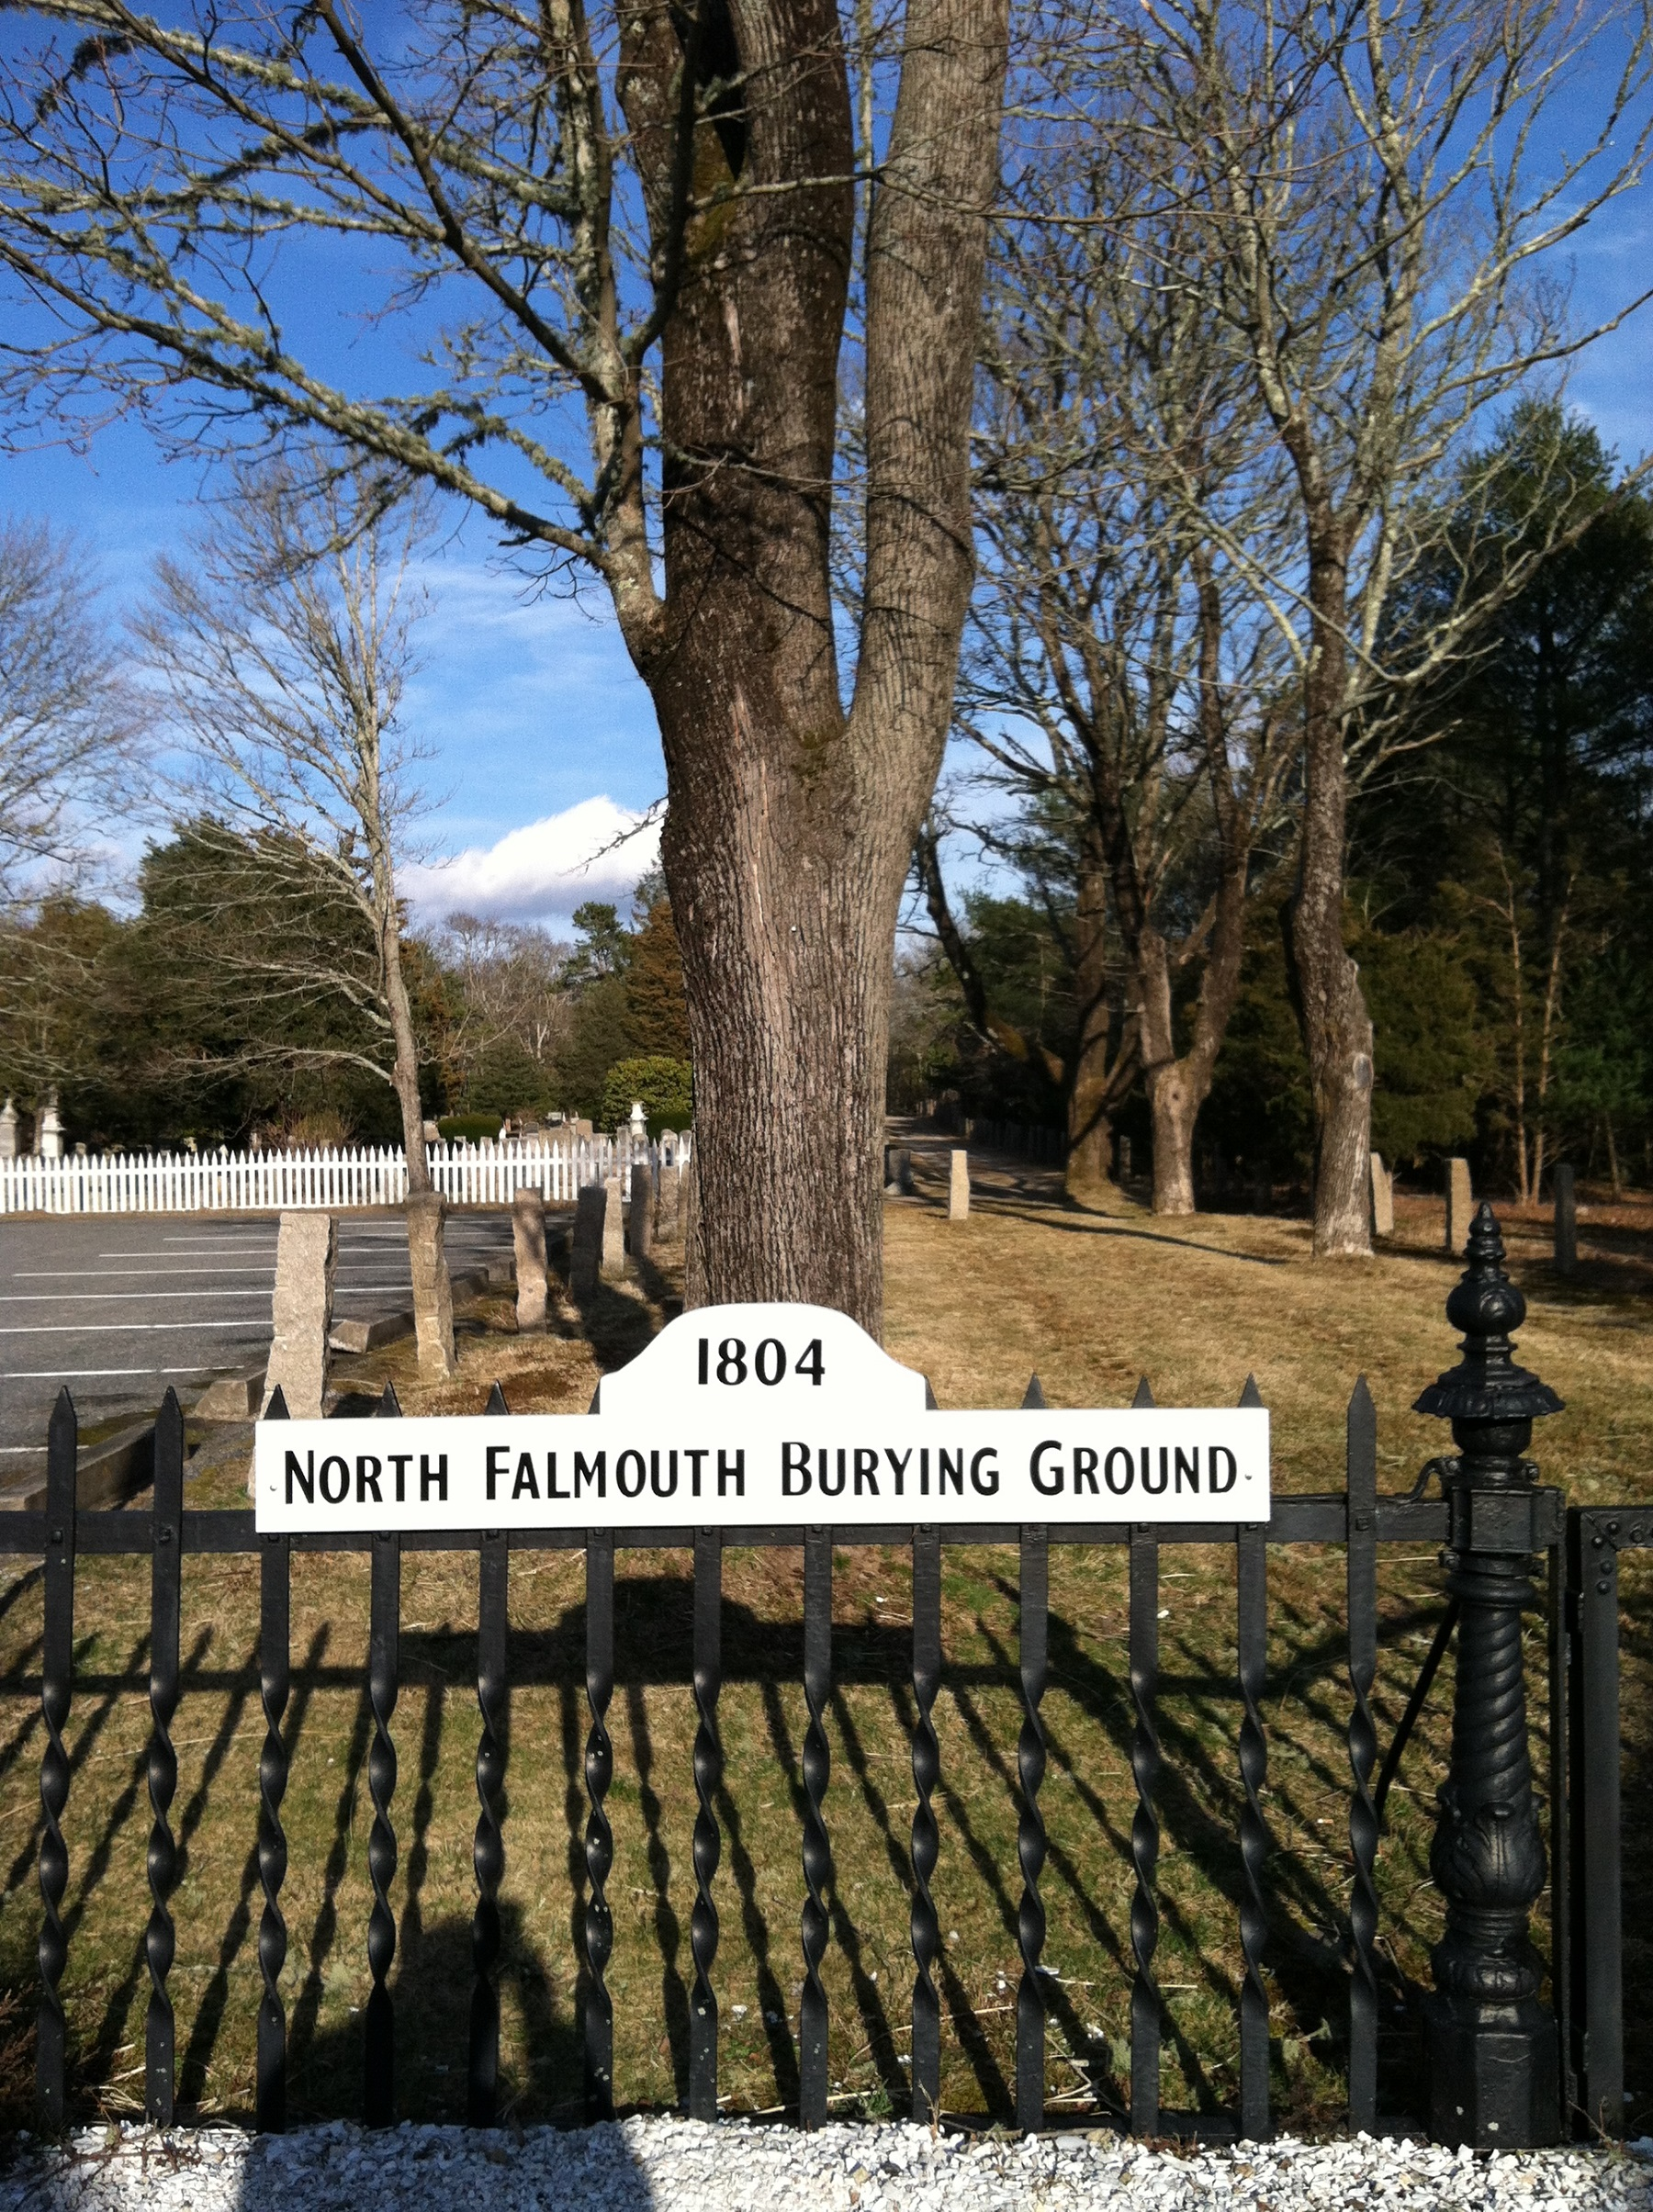 North Falmouth Burying Ground